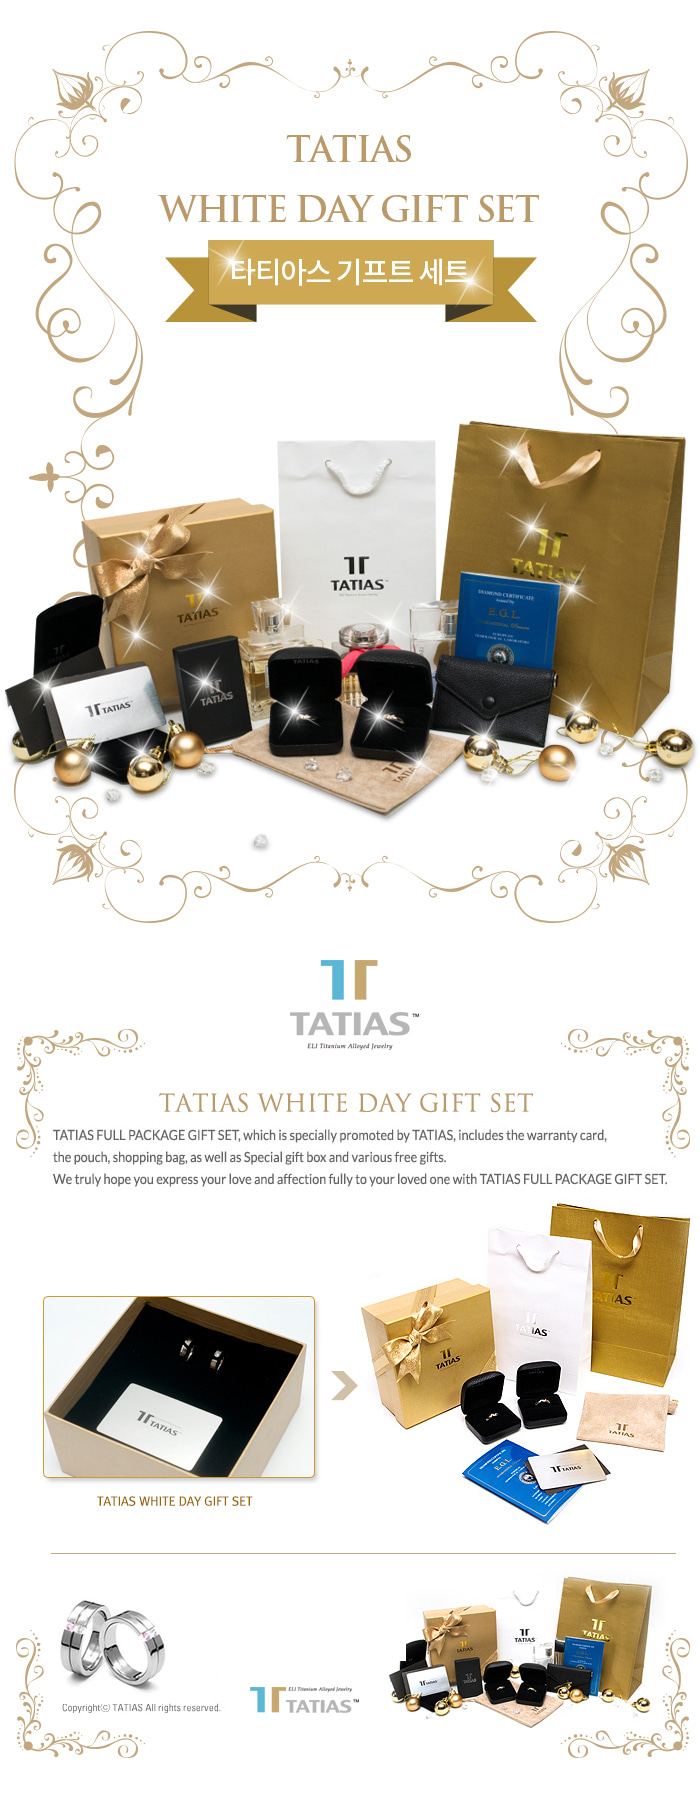 WHITE DAY GIFT SET, which is promoted by TATIAS, includes the warranty card, the pouch, shopping bag, as well as special gift box and free gifts.